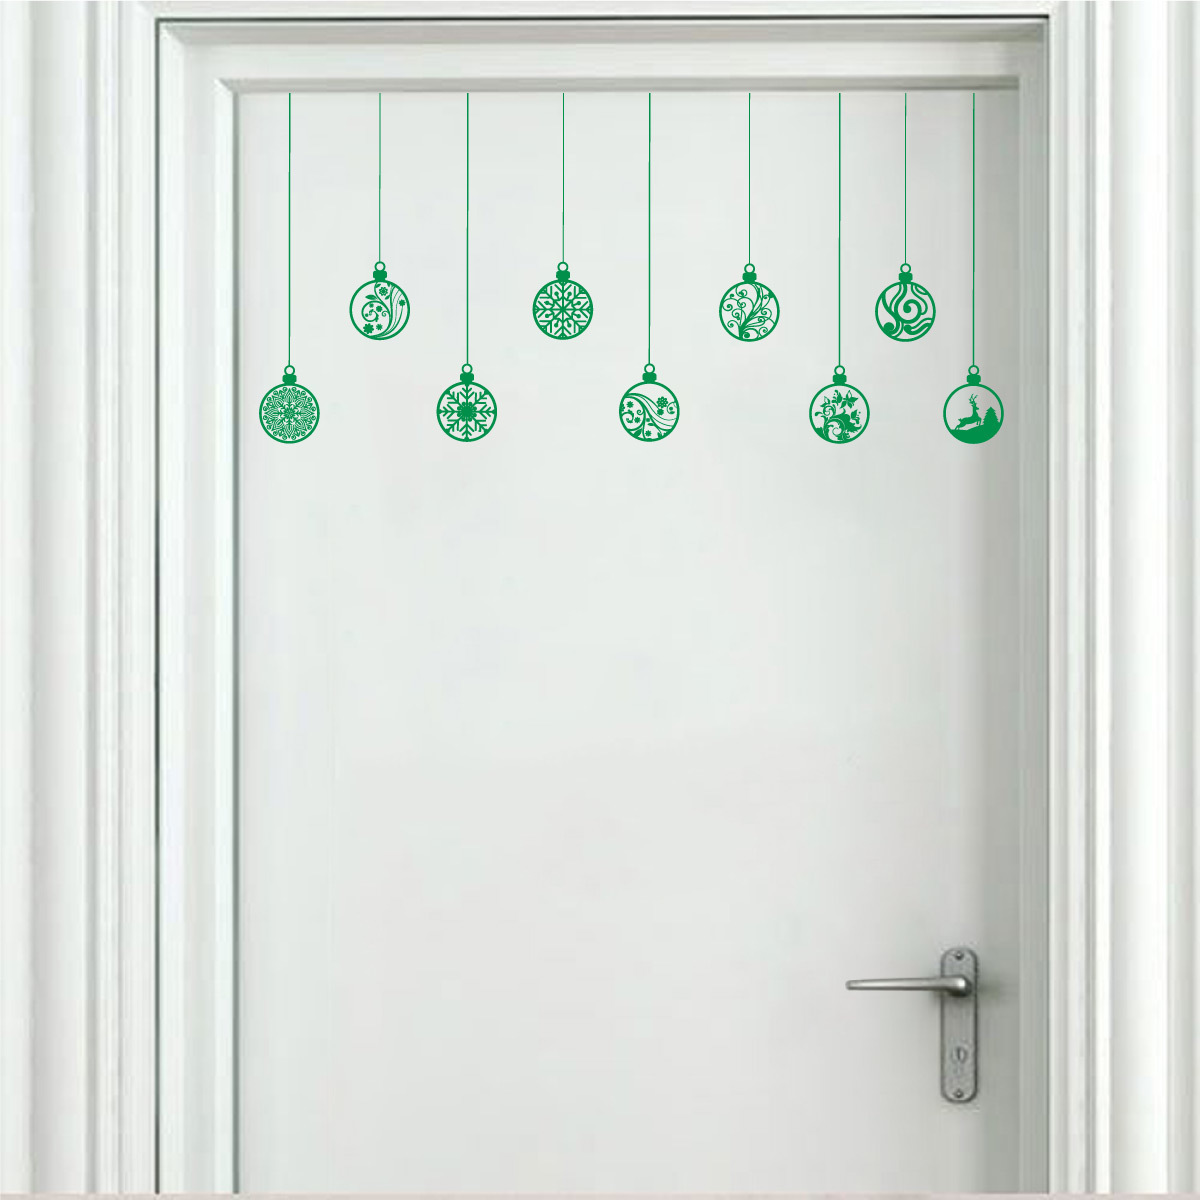 Ornament holiday wall sticker